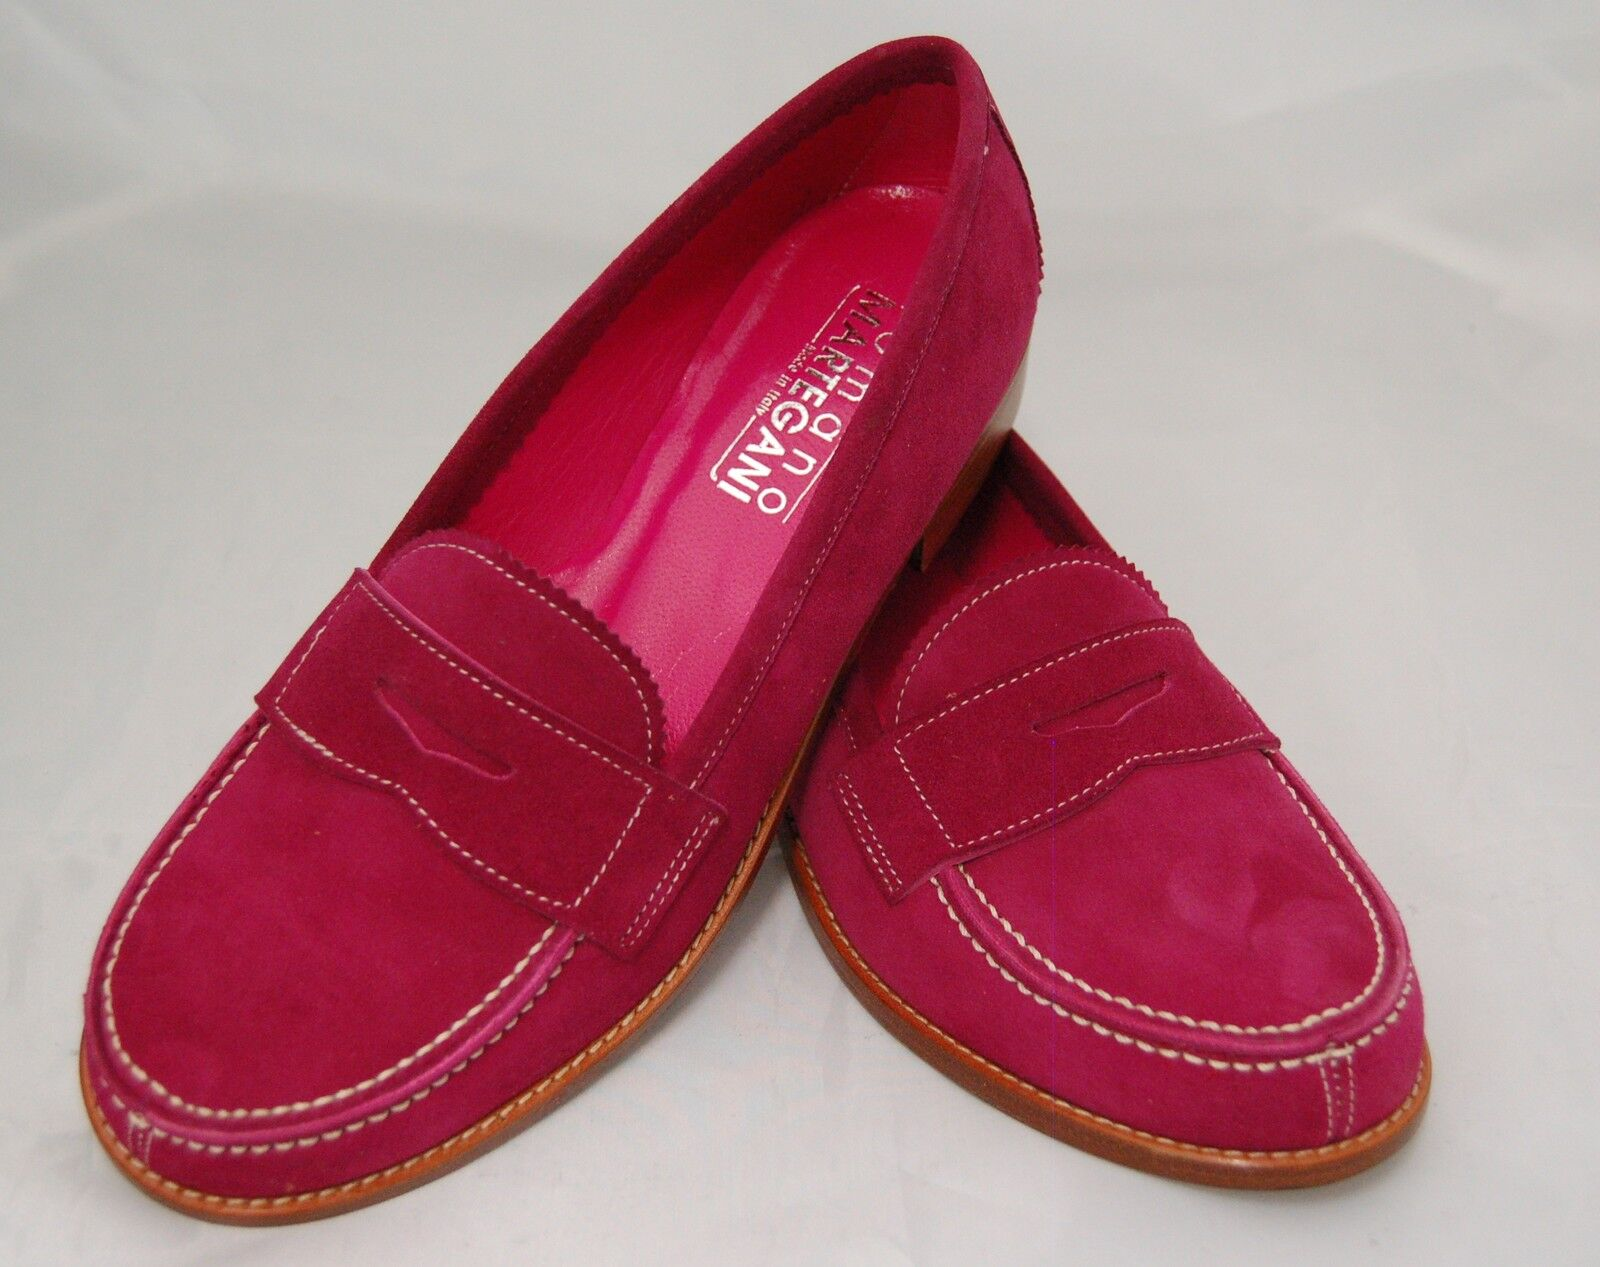 WOMAN - PENNY LOAFER - 37 - LINING FUXIA SUEDE - FUXIA LINING - - LEATHER SOLE/BLAKE CST cef0c1